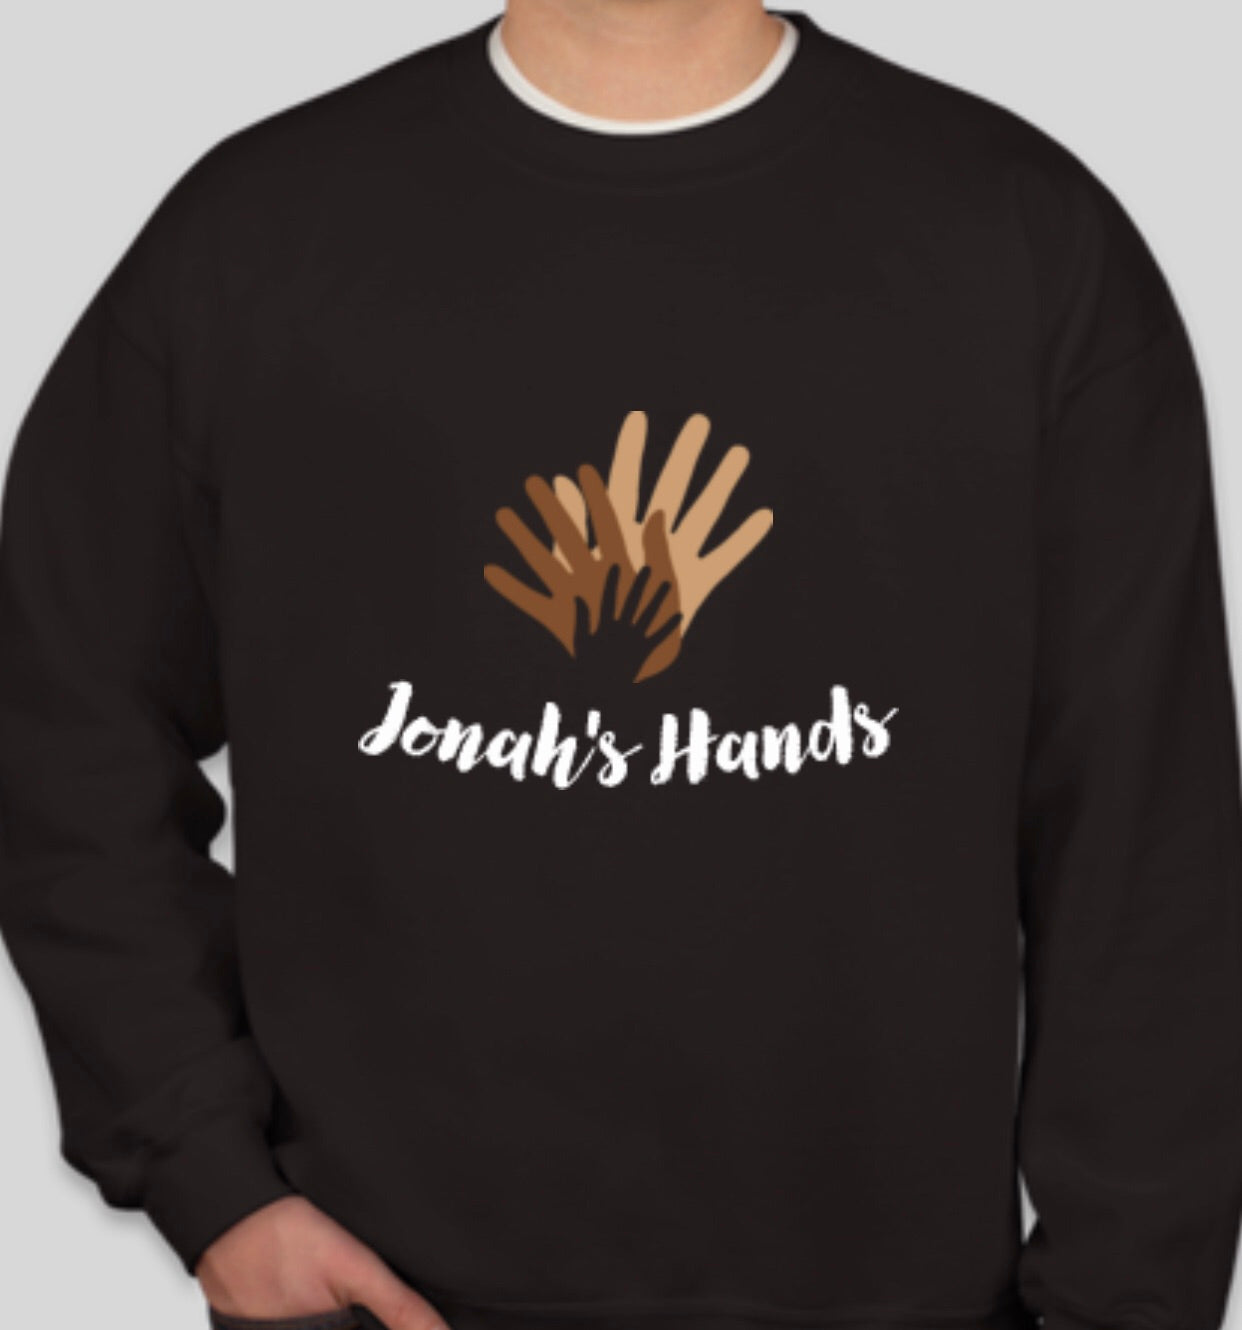 Jonah's Hands Crewneck Sweatshirt, Unisex (4 colors)